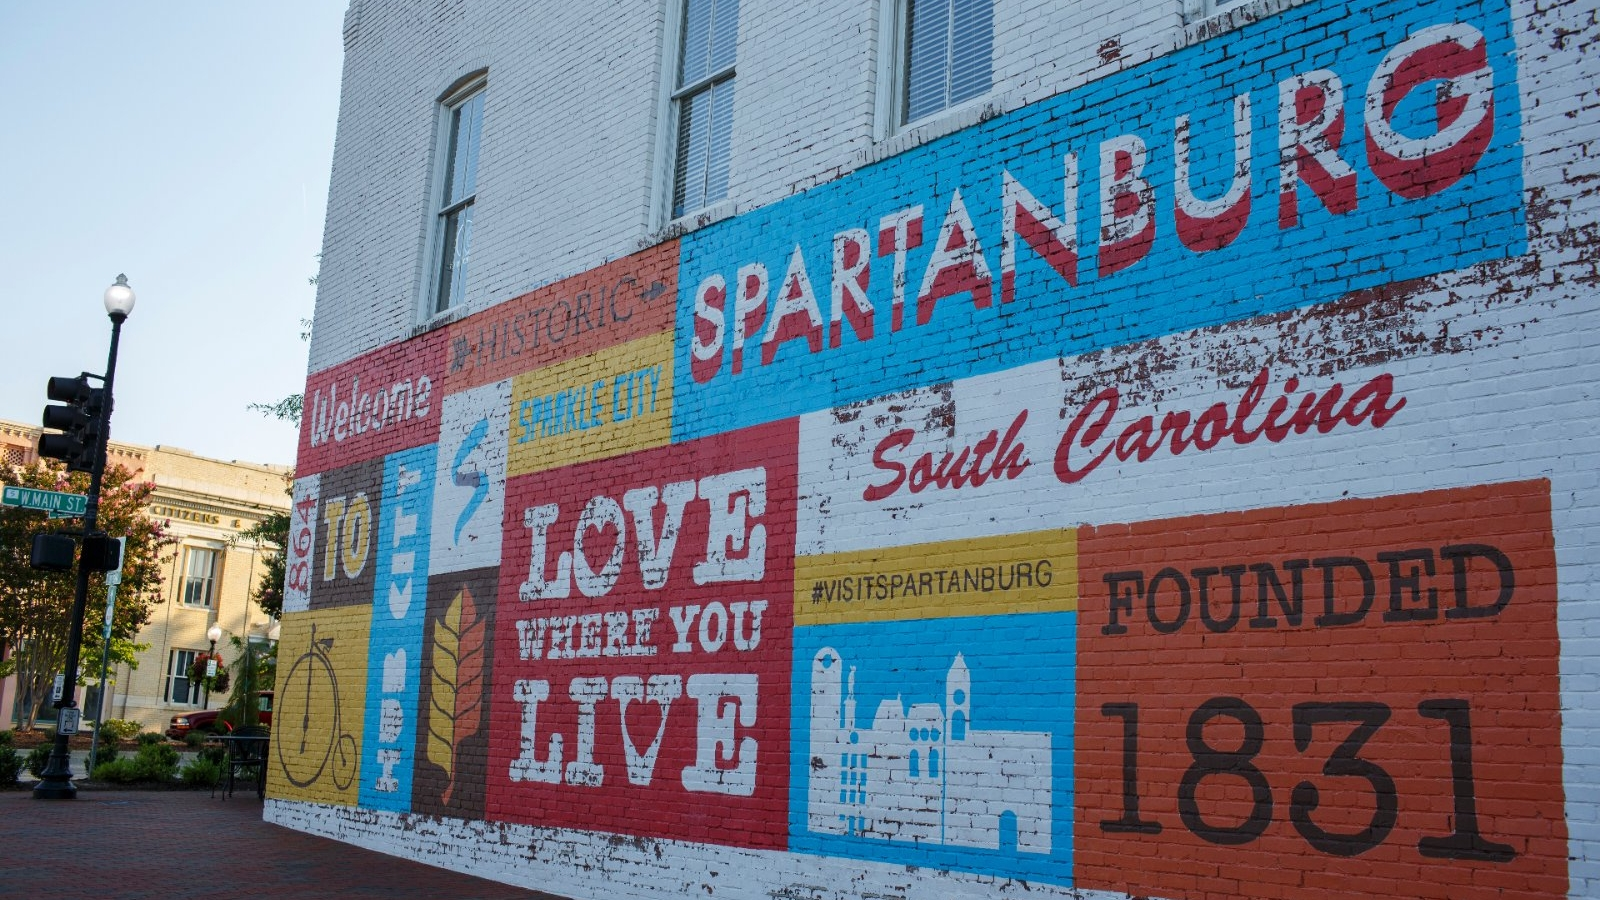 A A mural with a welcoming theme painted on the side of a building in  Morgan Square, Spartanburg, SC.